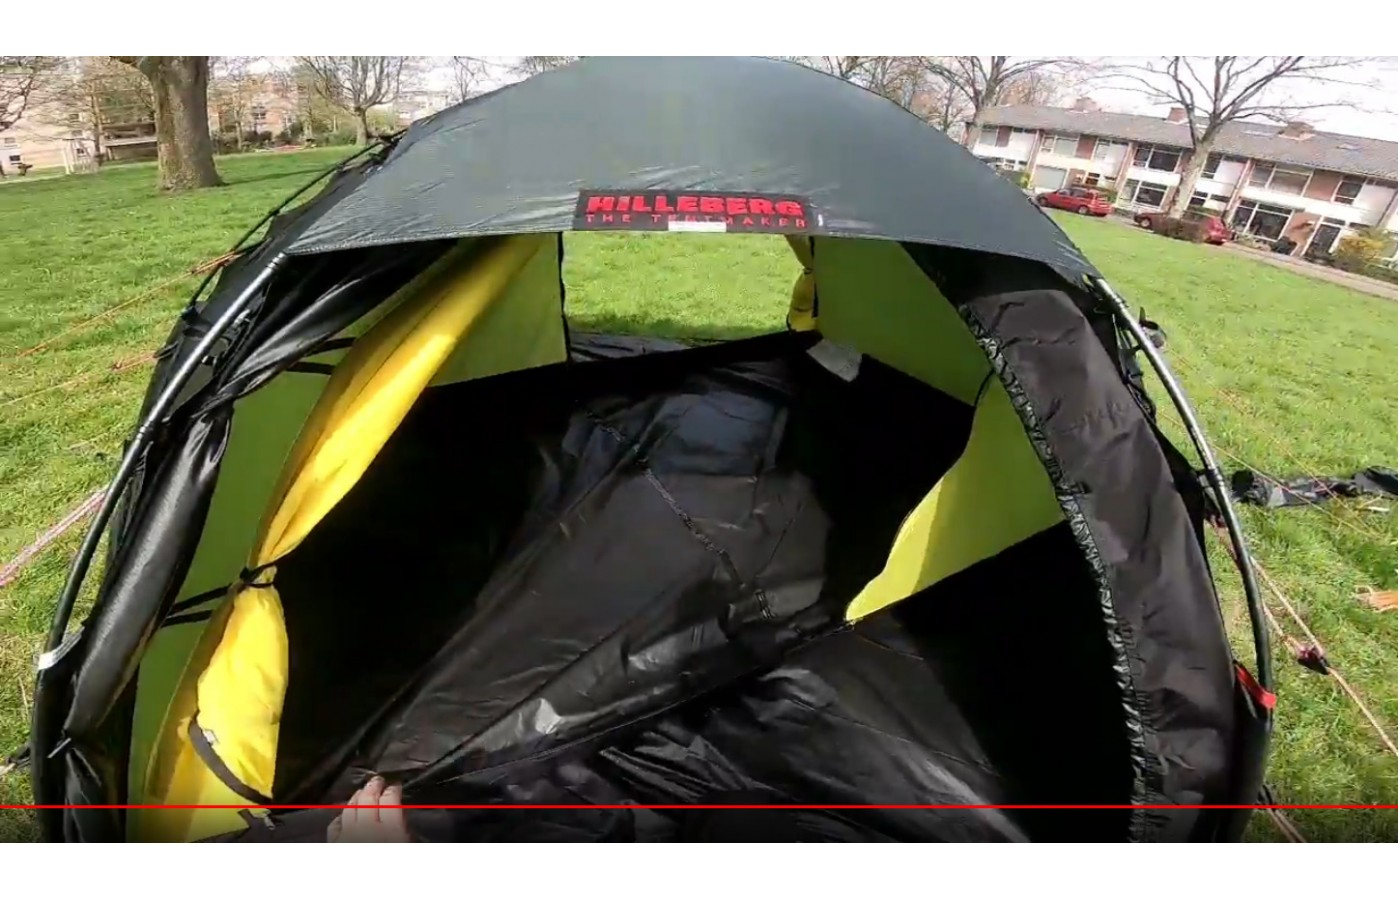 It is triple treated to protect against water on the outer shell of the tent.